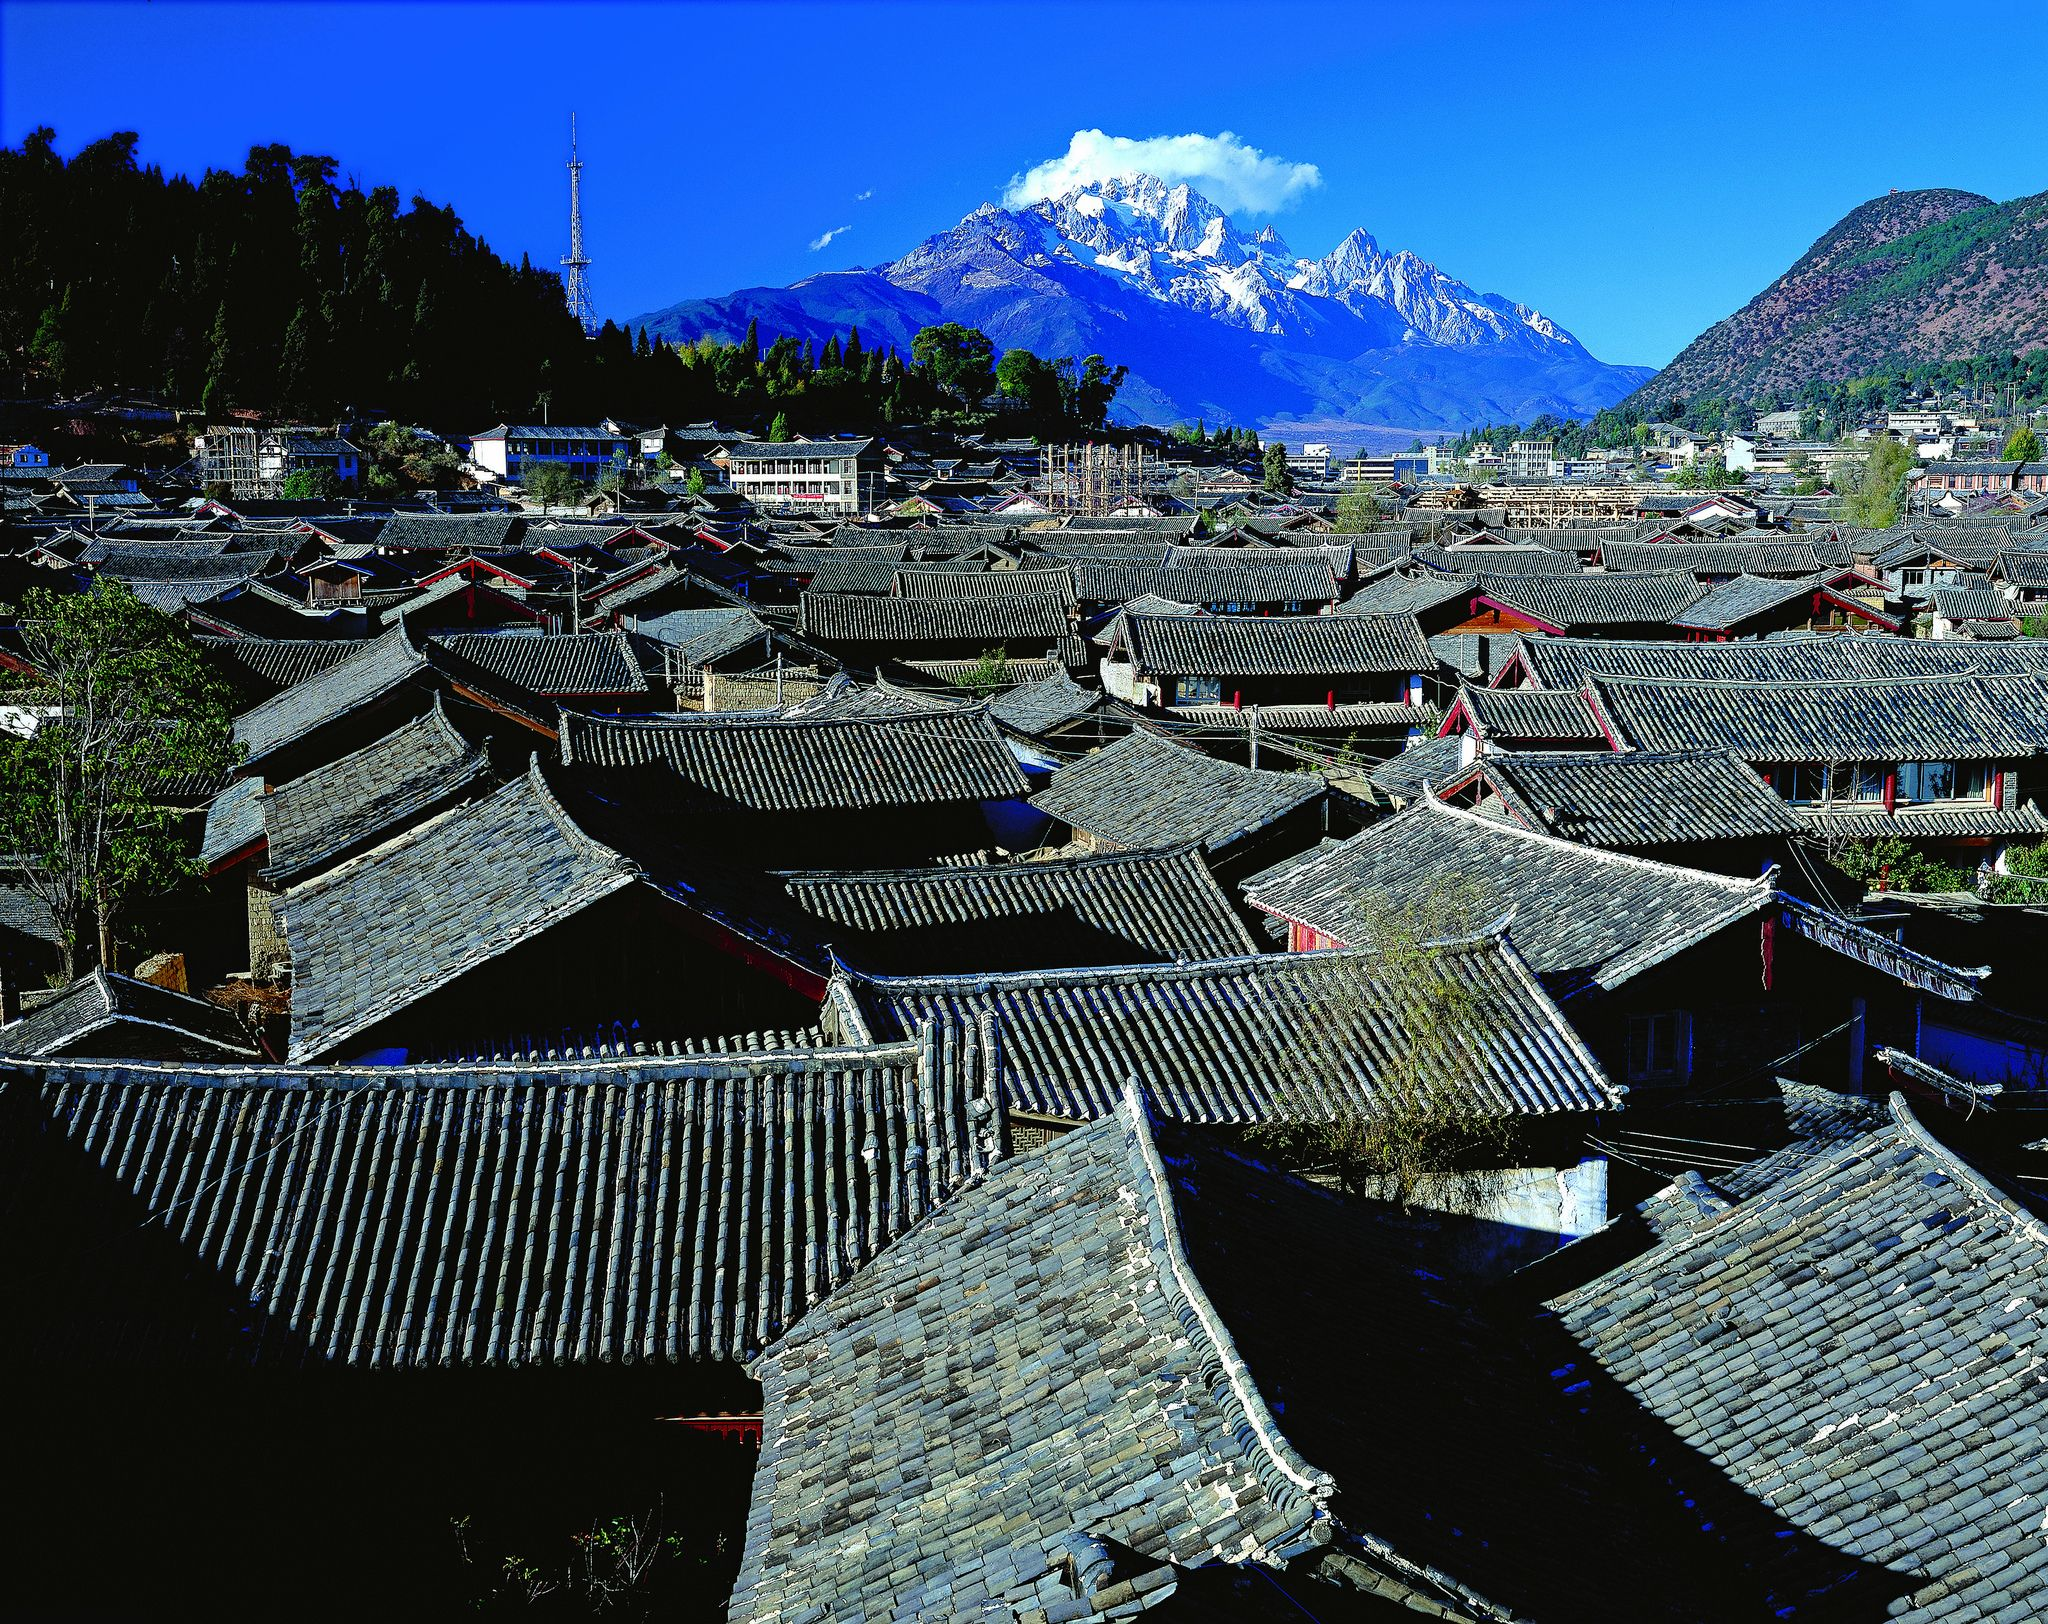 Yunnan Province, Old Town of Lijiang, Visit China, Read articles at www.whattravelwiterssay.com